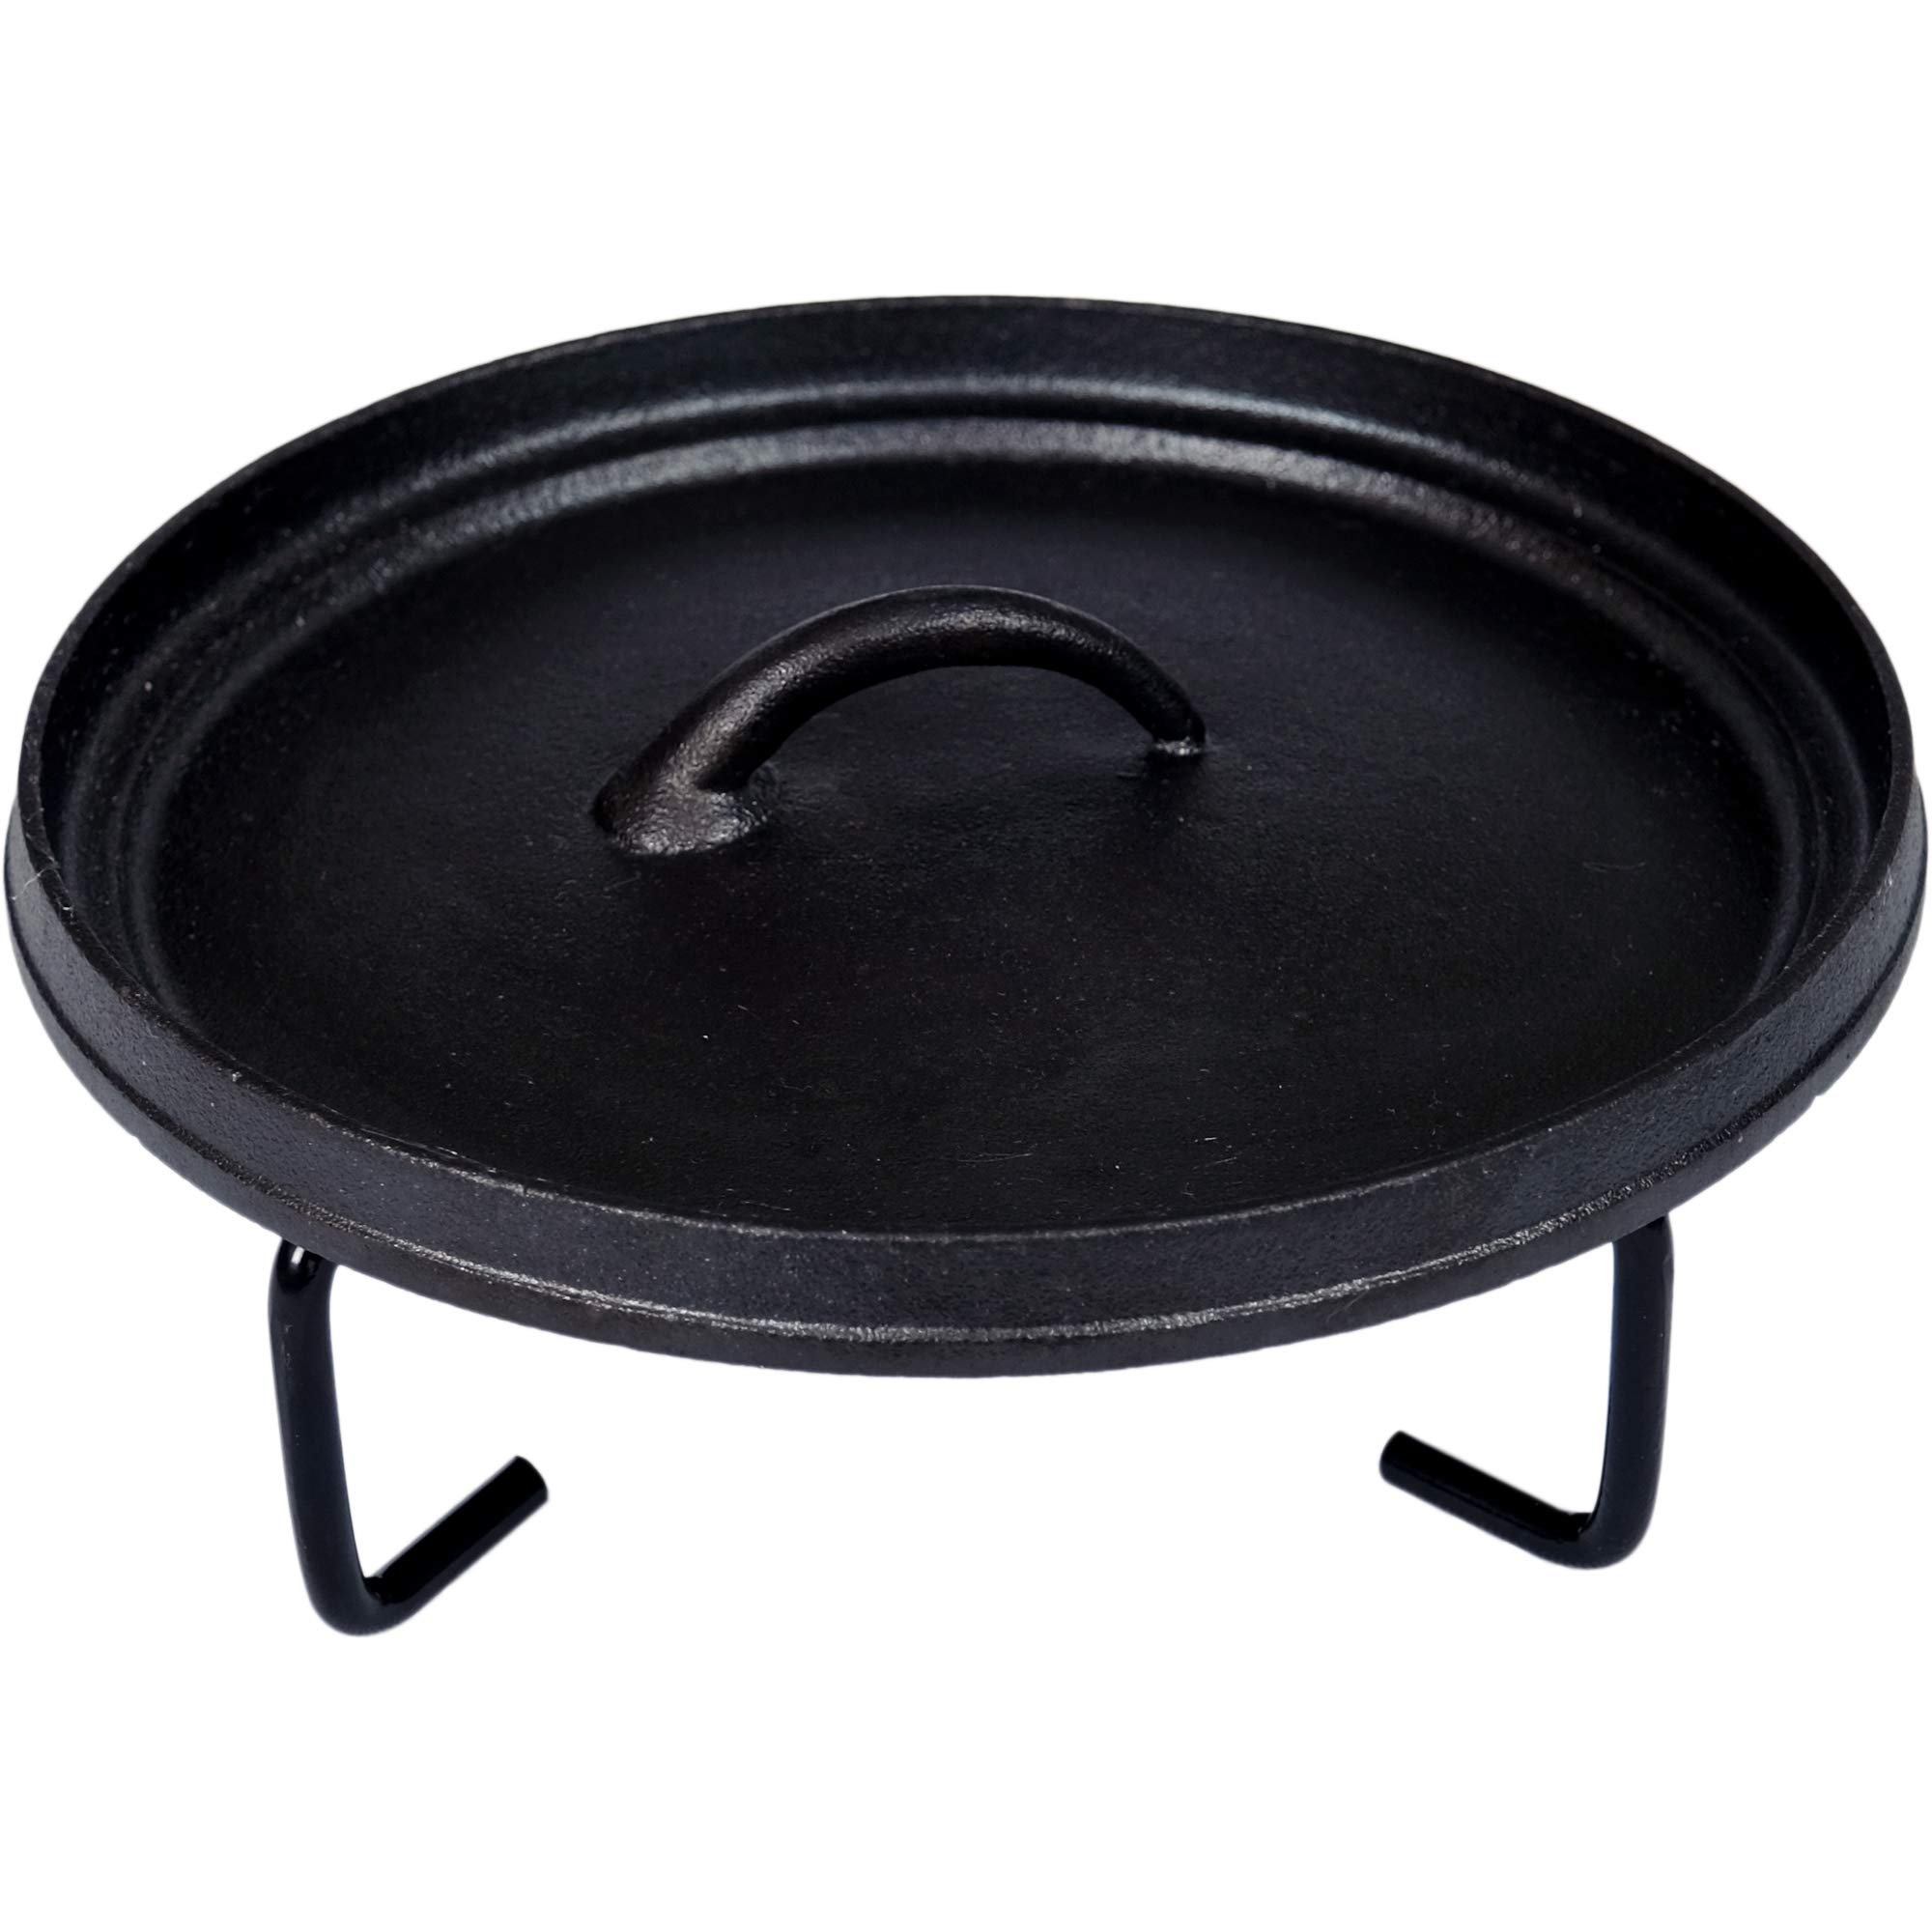 Lid stand, Camp Dutch Oven Tool by Crucible Cookware (Image #4)